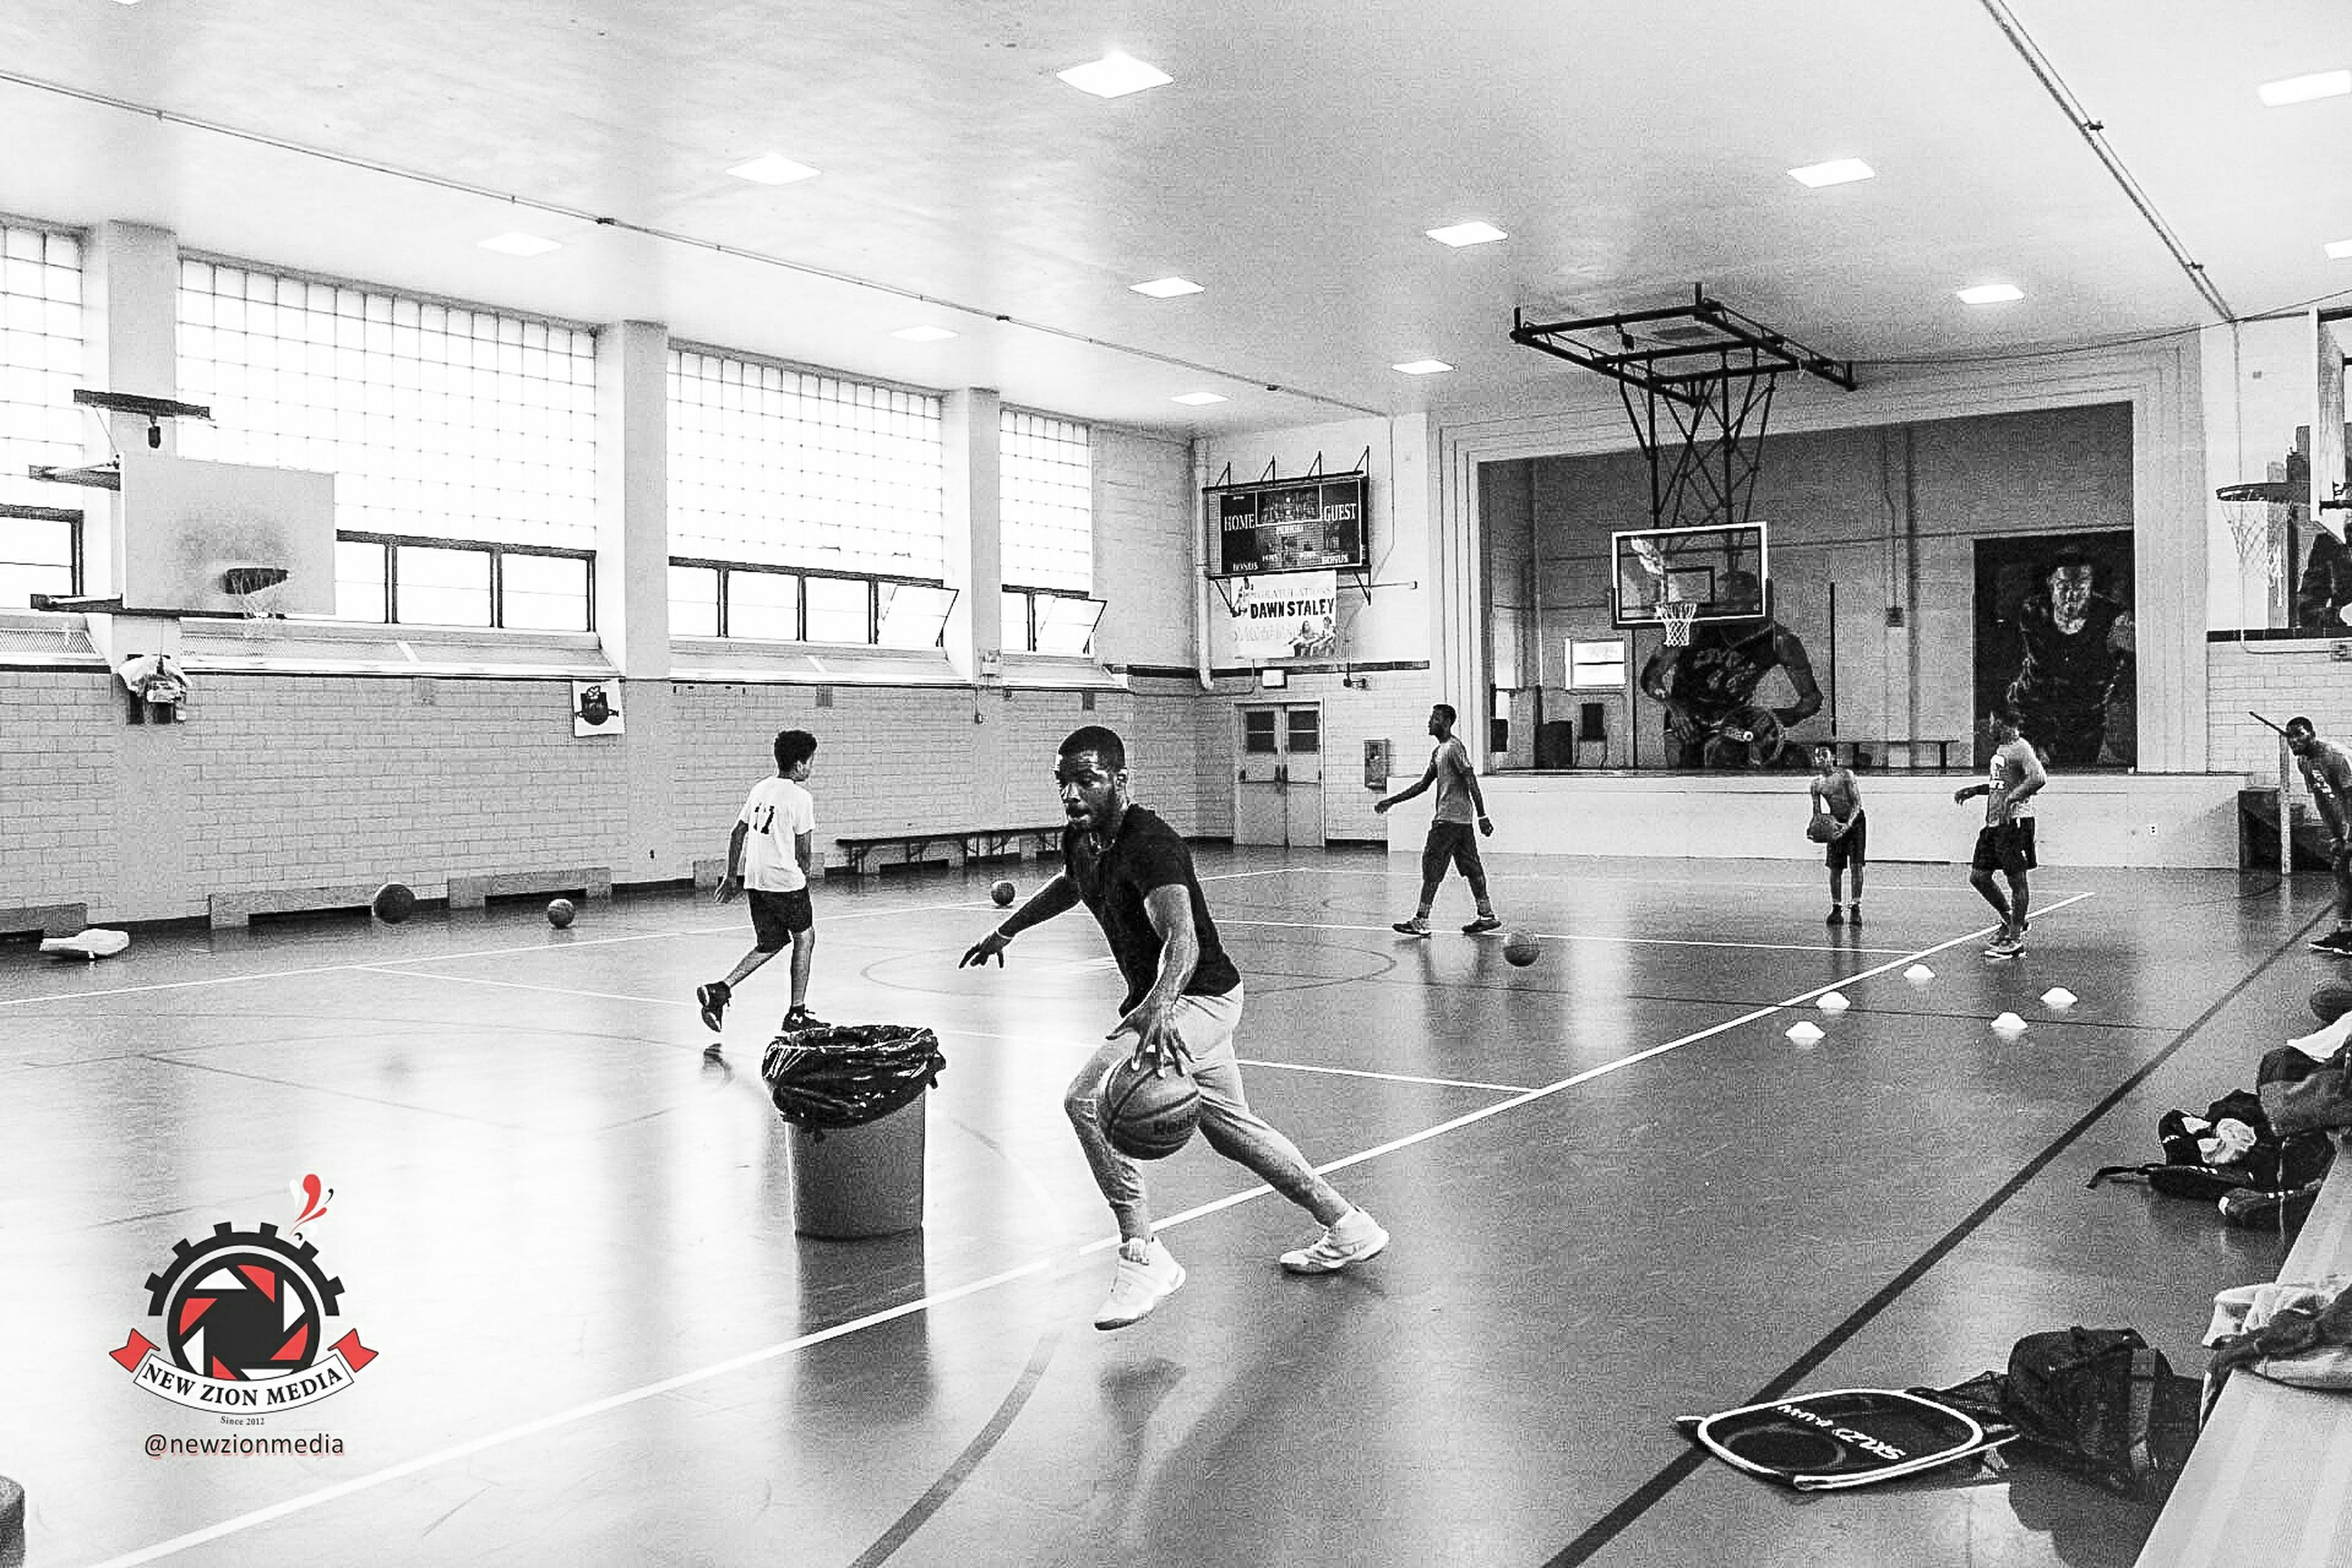 indoors, exercising, sport, gym, real people, lifestyles, group of people, full length, men, large group of people, sports clothing, basketball - sport, people, adult, day